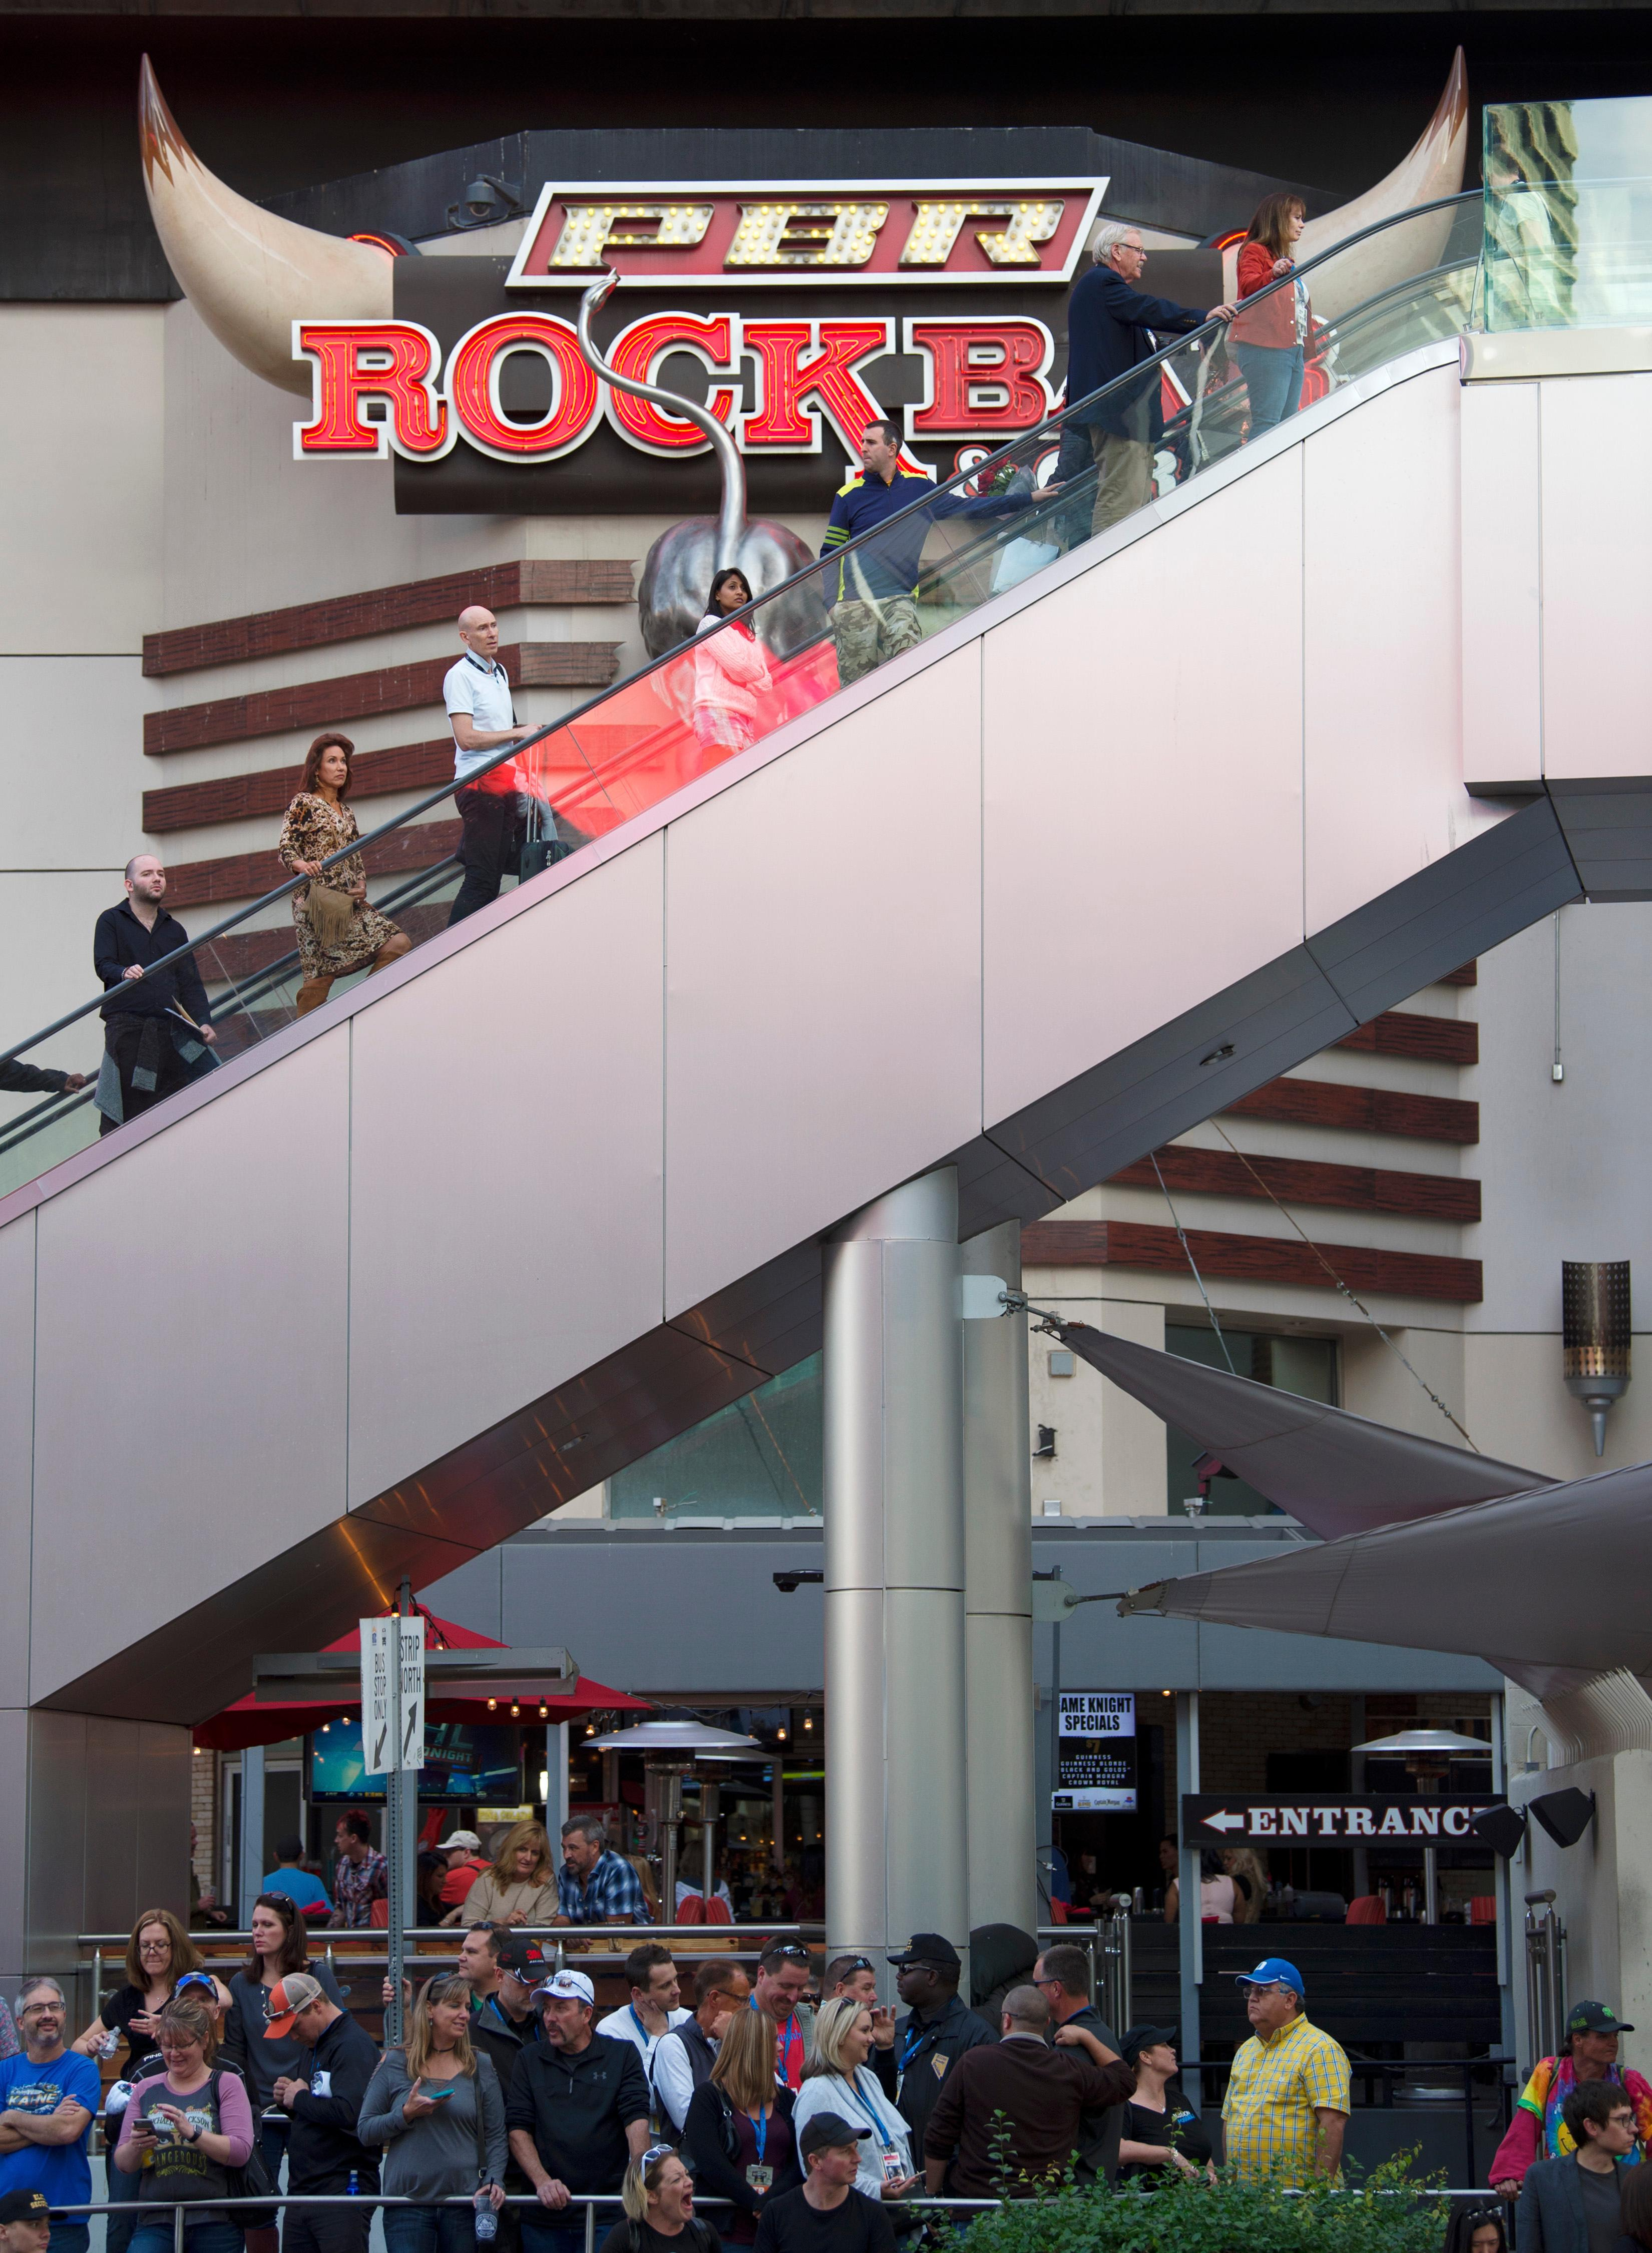 People ride an escalator up to a pedestrian walkway during the NASCAR Victory Lap on the Las Vegas Strip being held as part of Champions Week Wednesday, November 29, 2017. CREDIT: Sam Morris/Las Vegas News Bureau